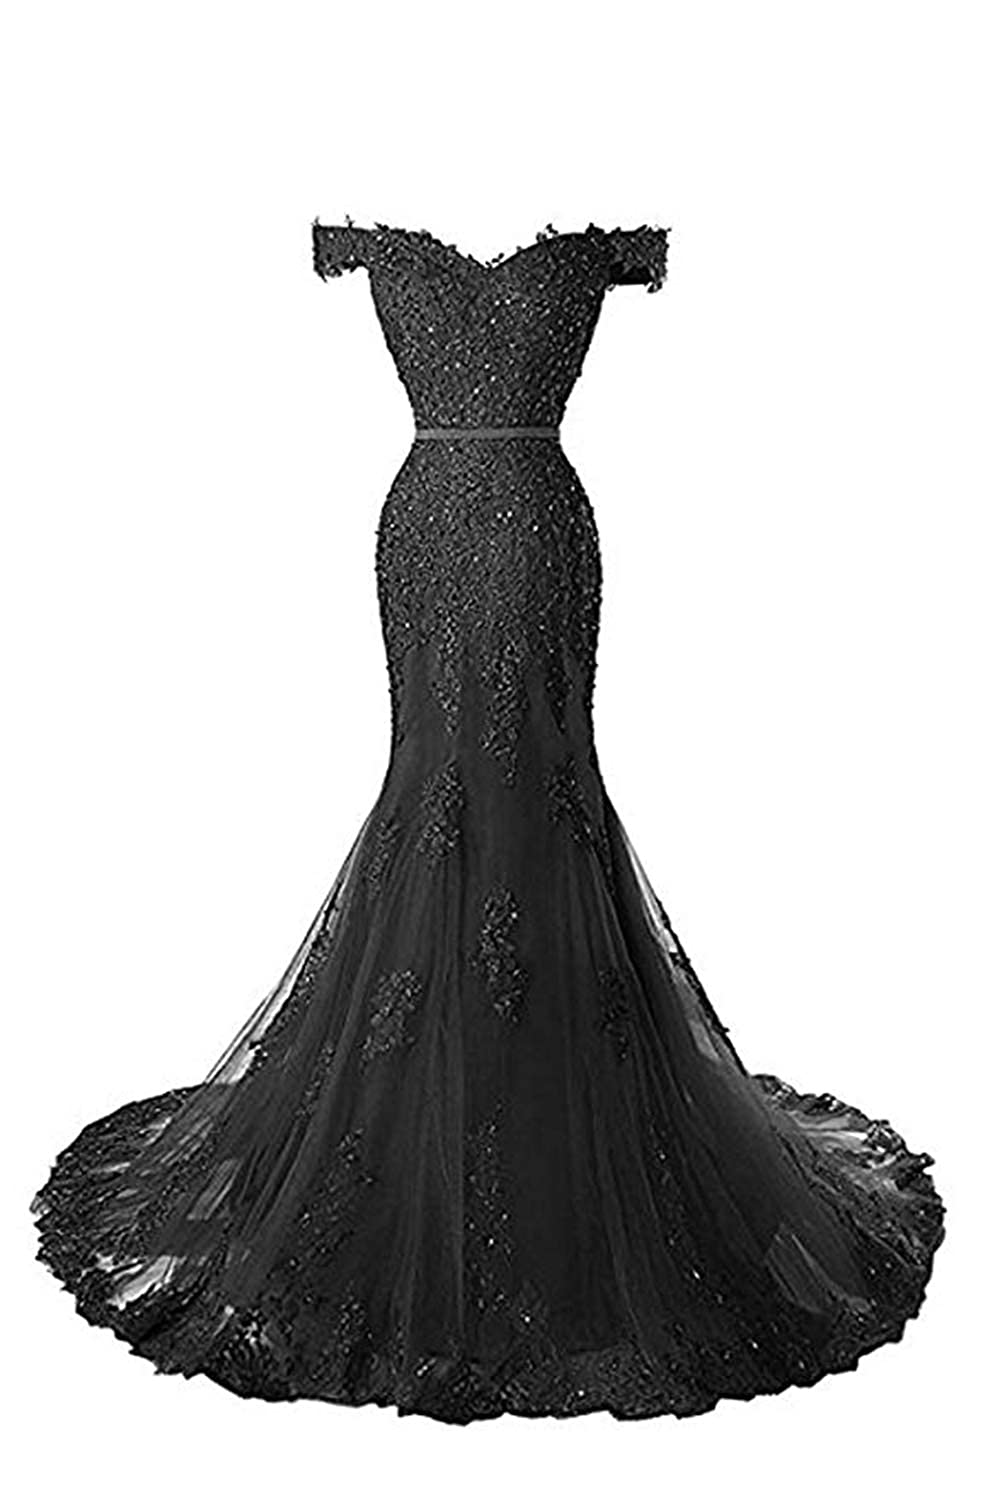 Black formalmall Women's Off The Shoulder Mermaid Prom Dresses 2019 Long Beaded Lace Applique Evening Gown